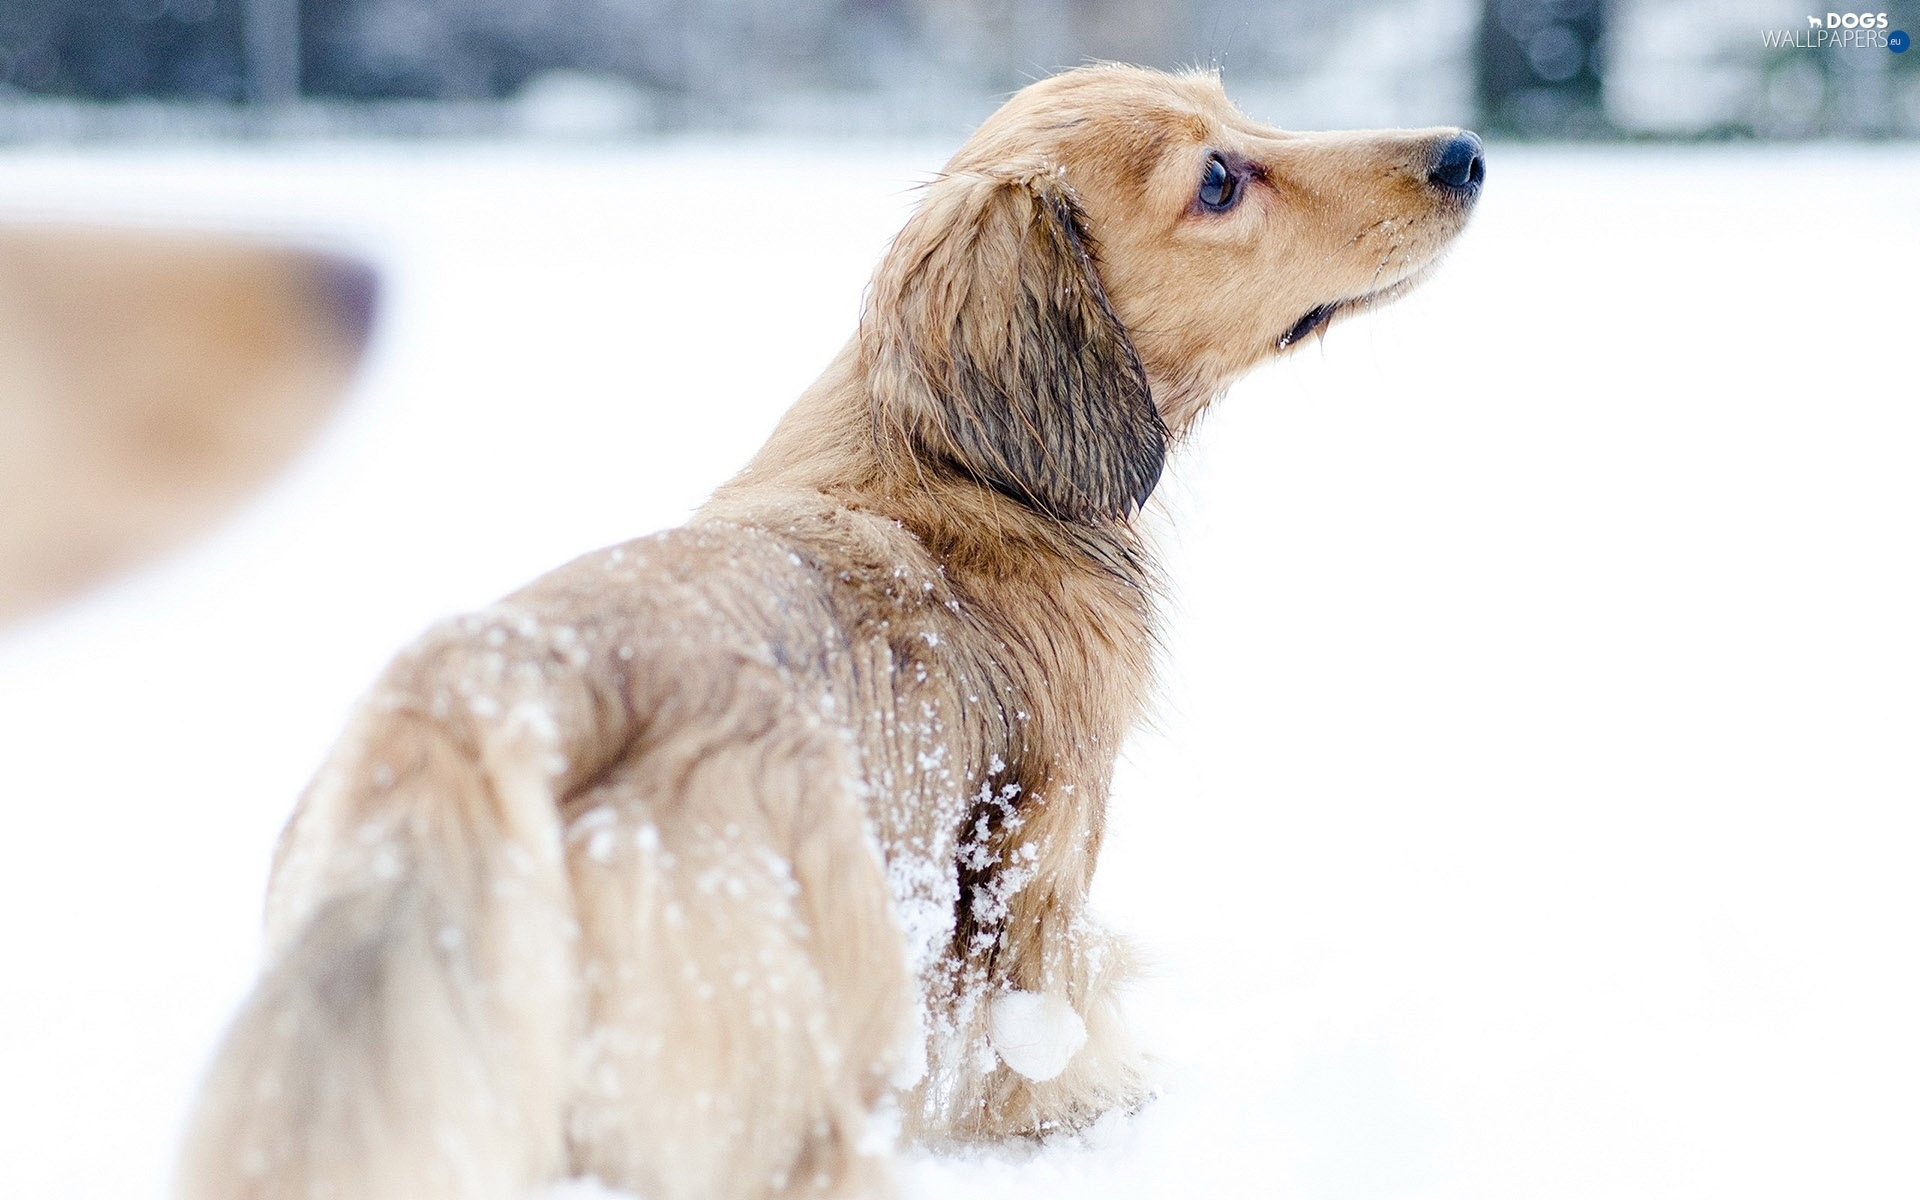 snow, winter, dachshund, Longhaired - Dogs wallpapers: 1920x1200